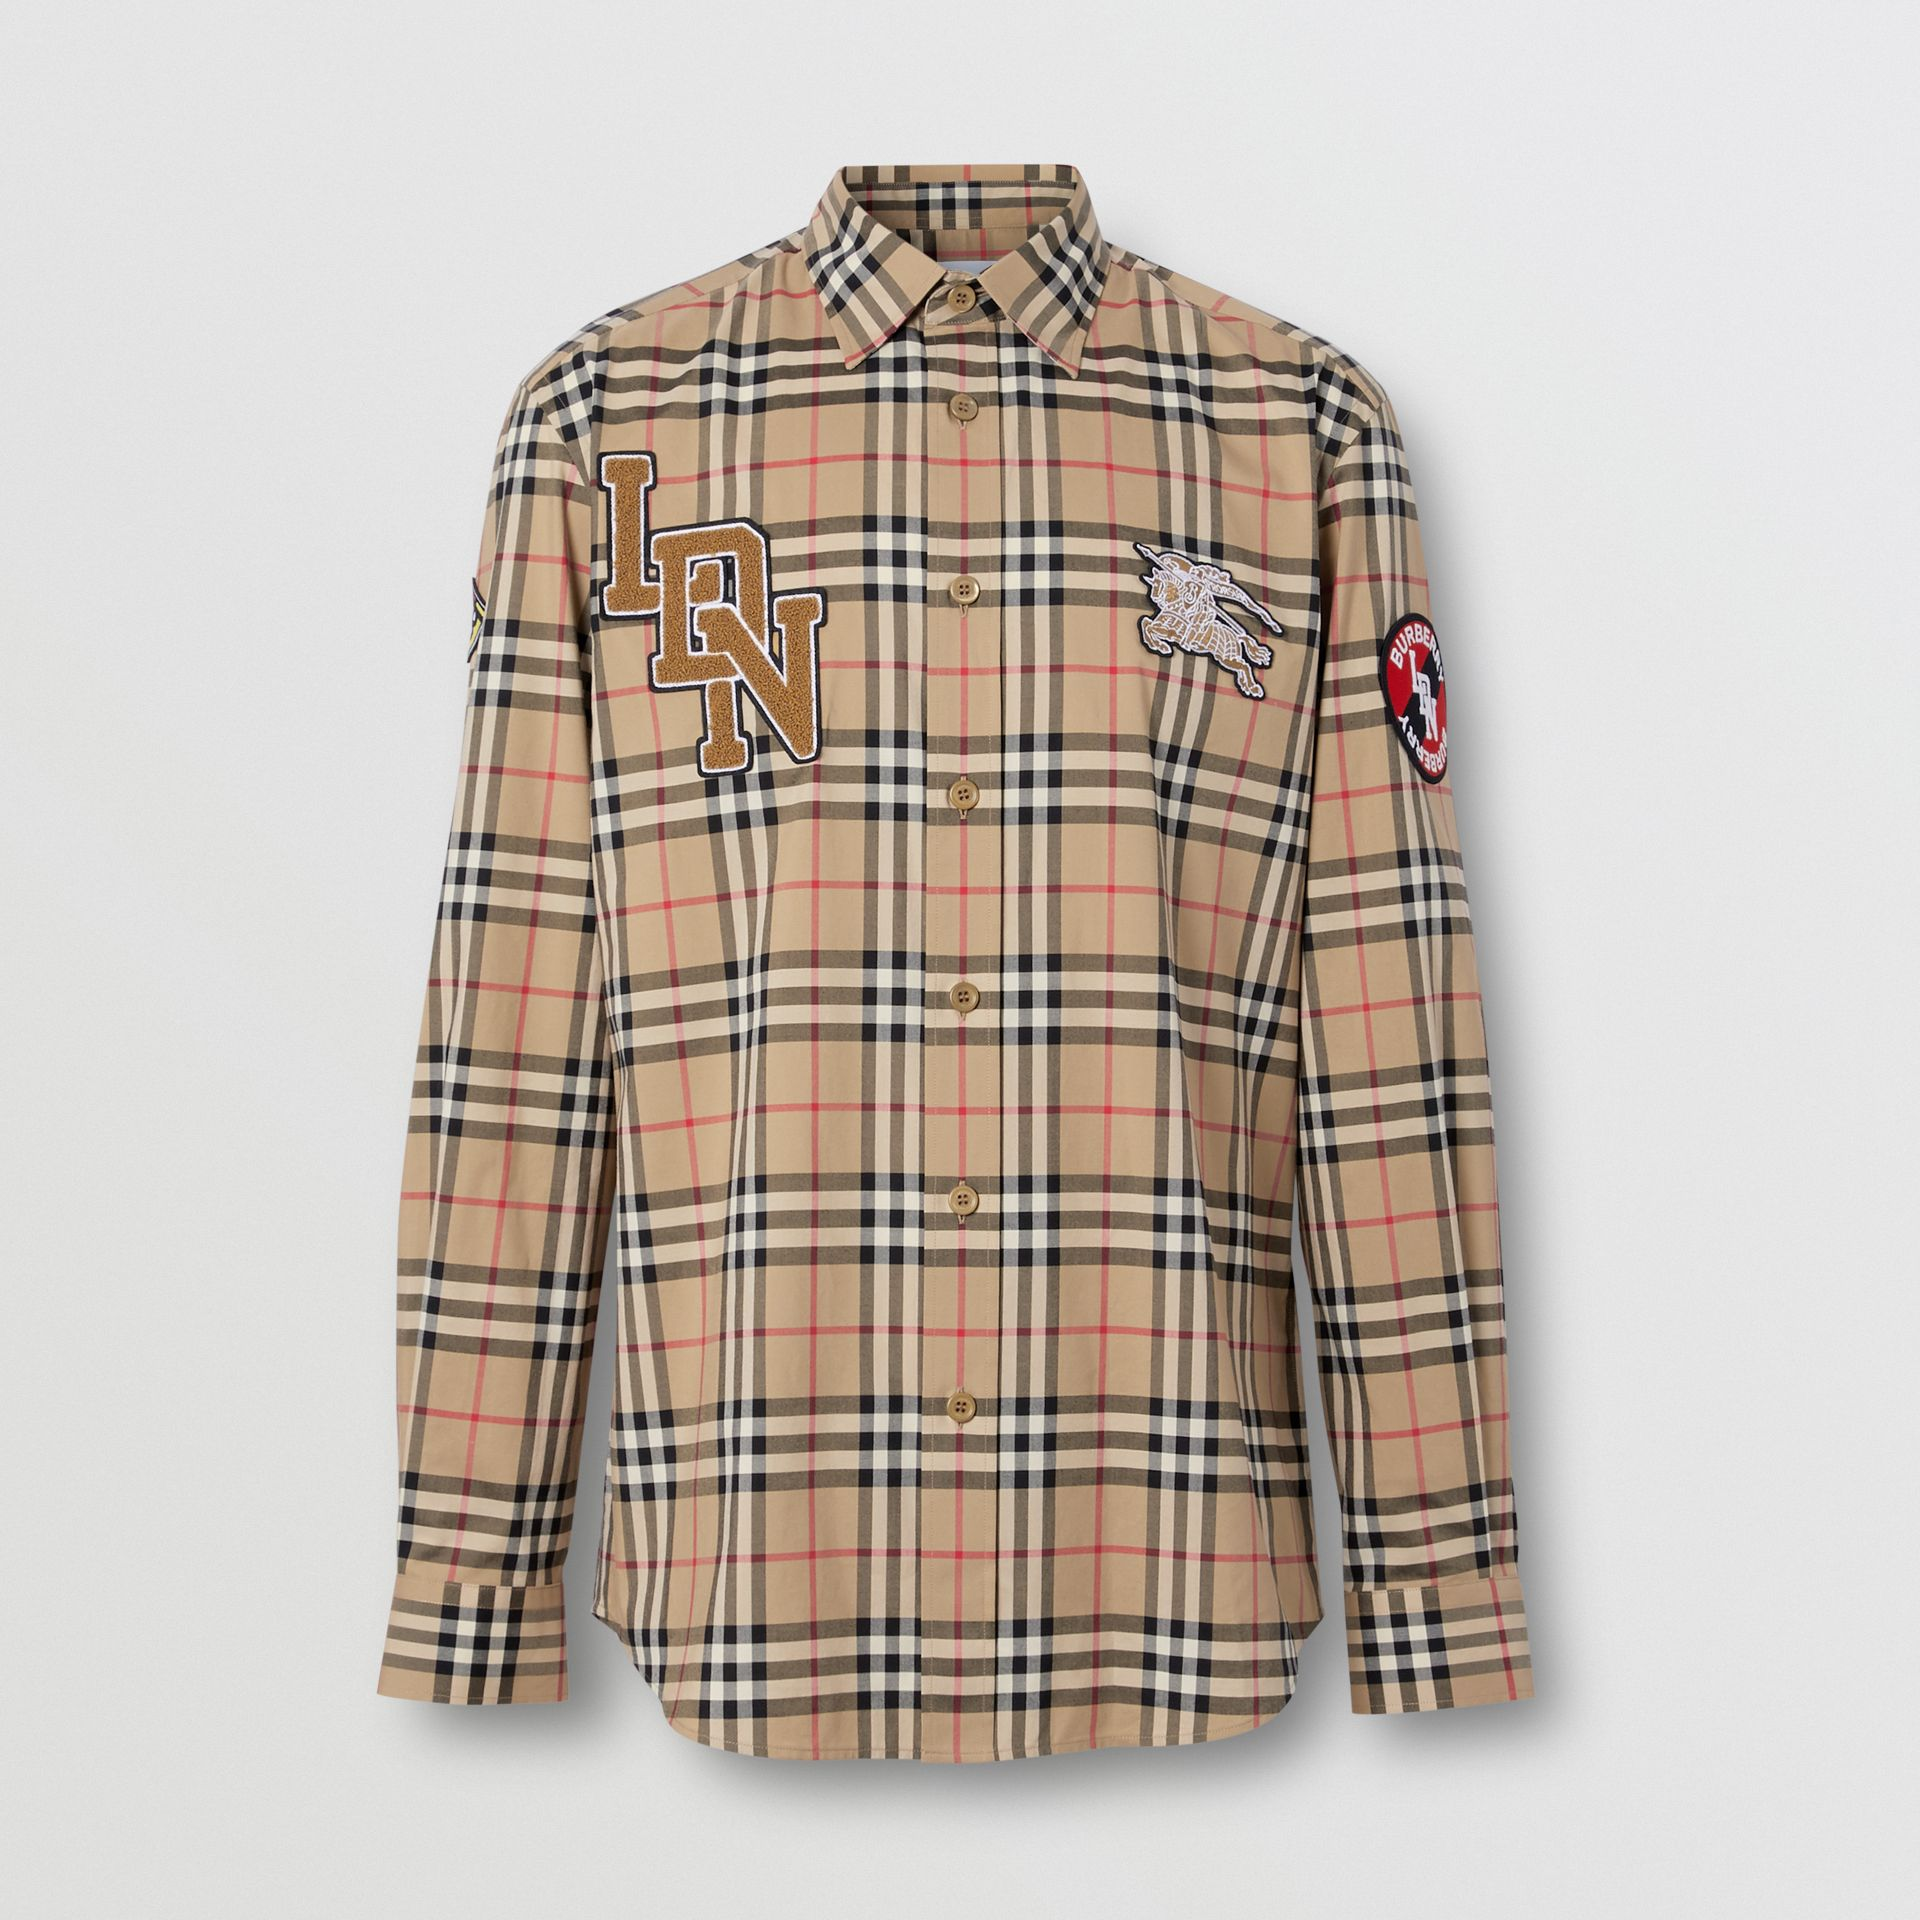 Classic Fit Logo Graphic Vintage Check Cotton Shirt in Archive Beige - Men | Burberry - gallery image 3